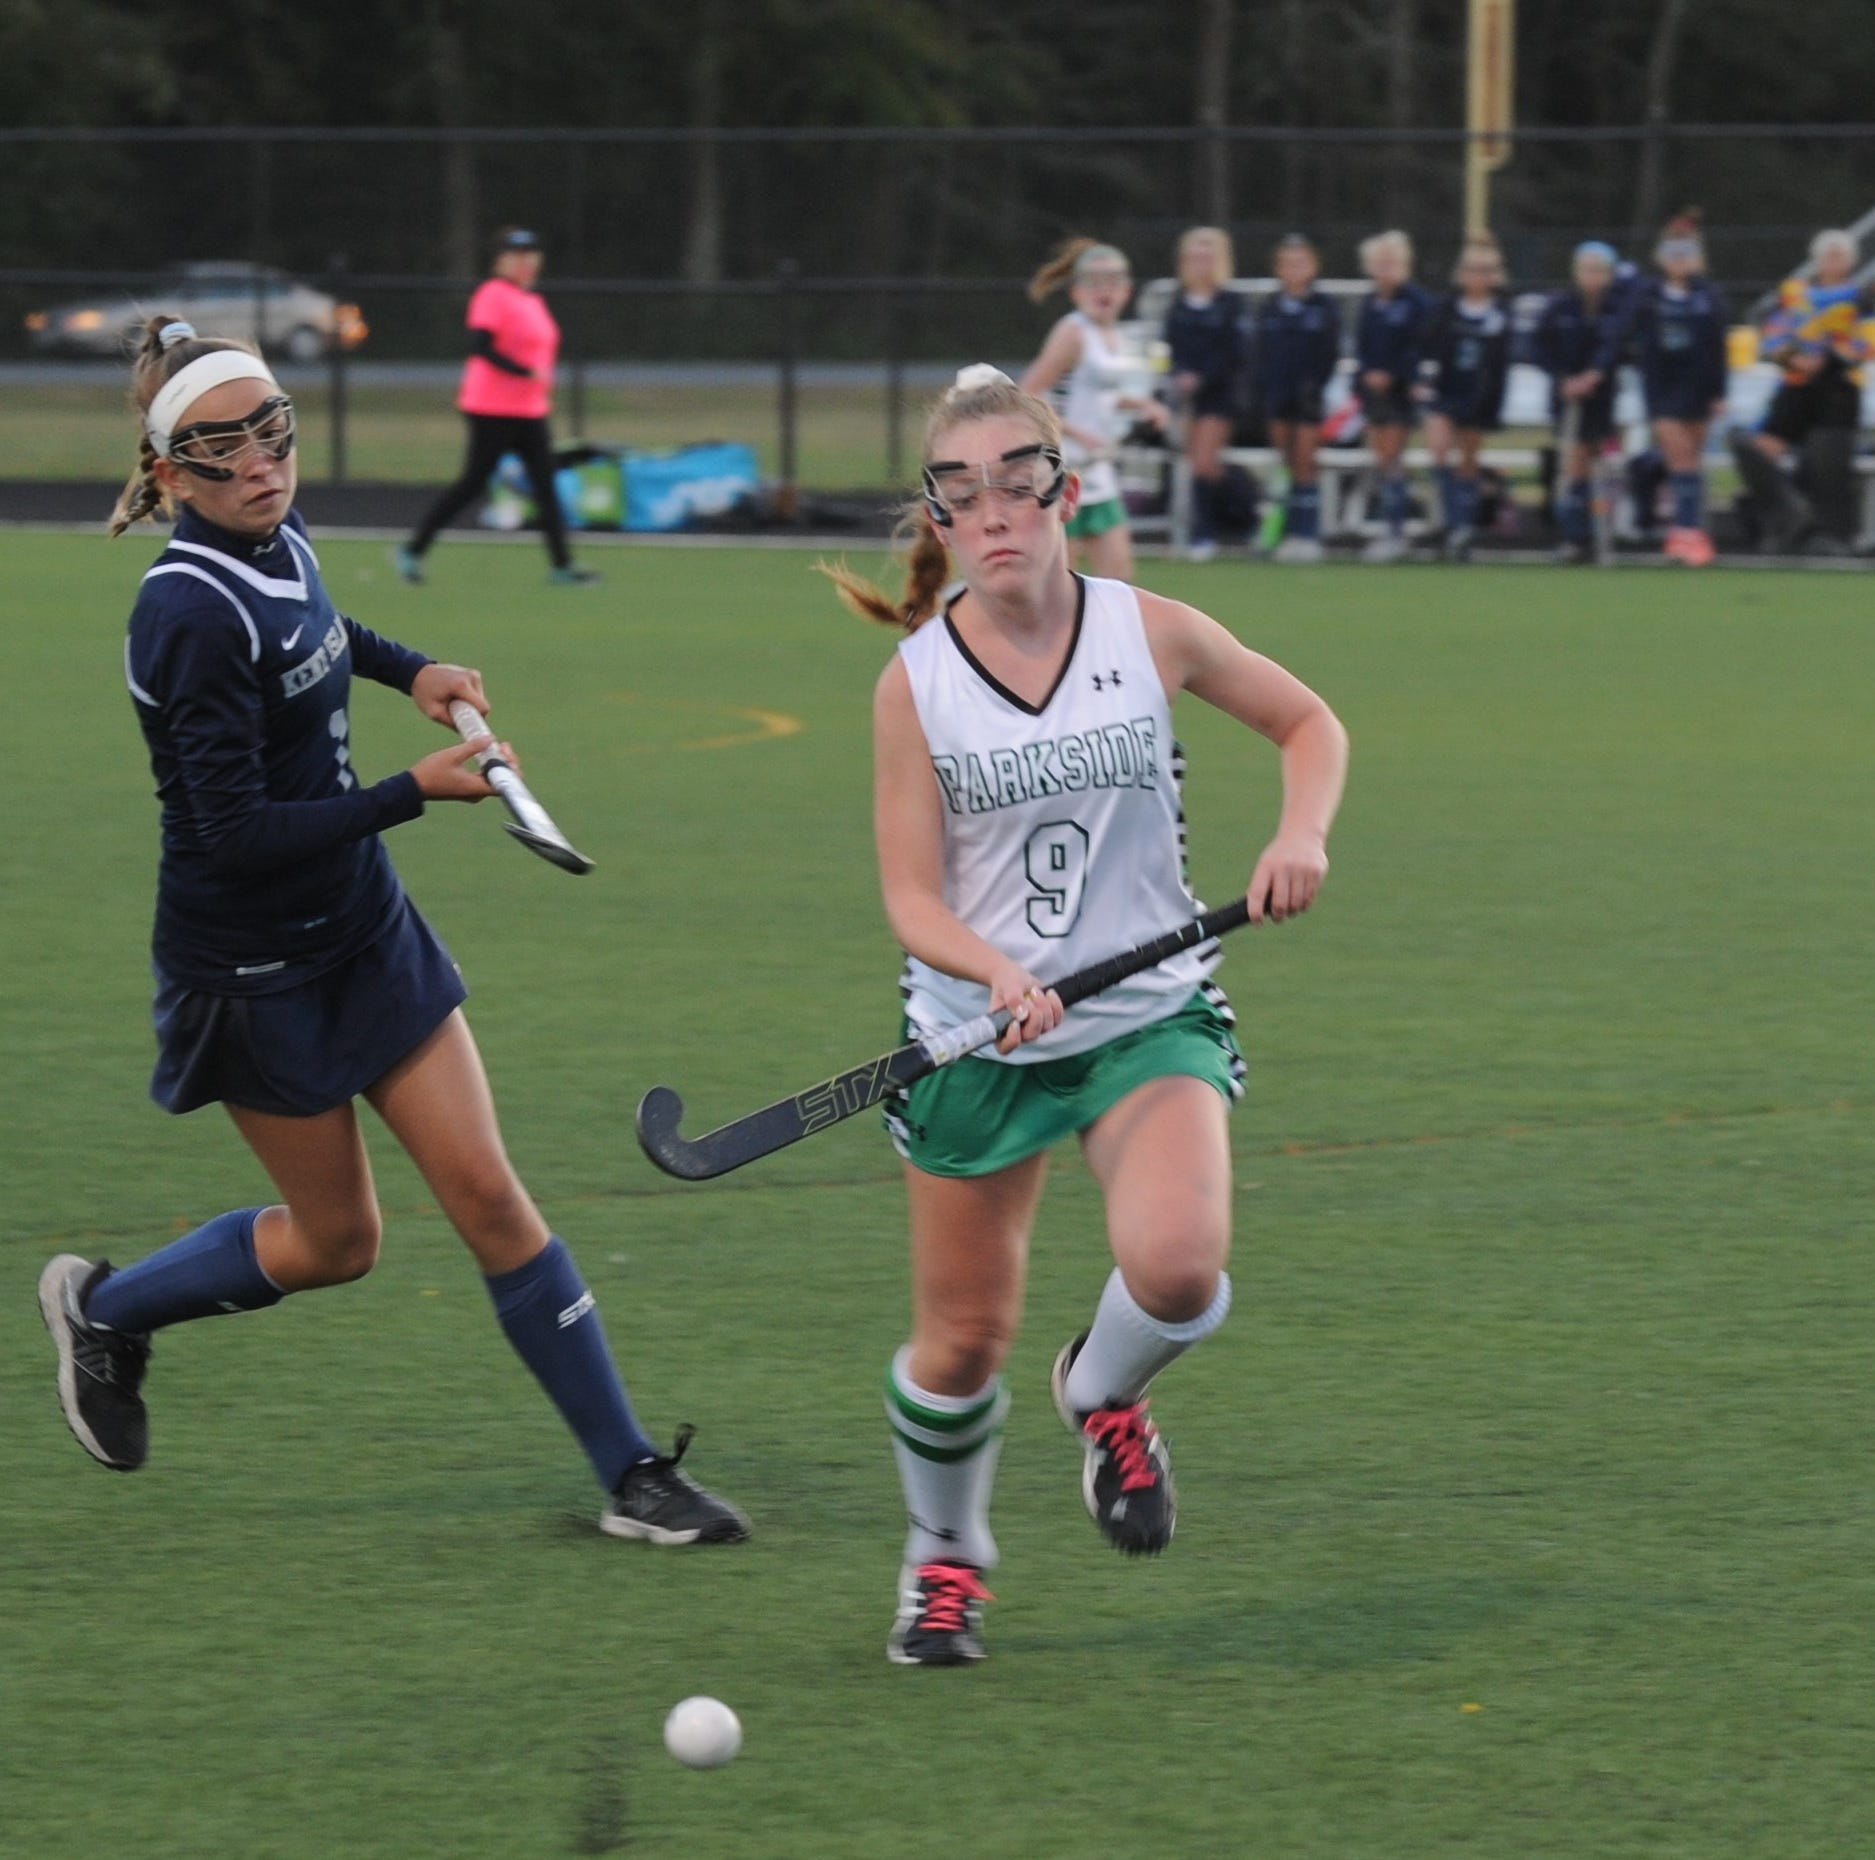 Parkside sweeps conference awards: All-Bayside field hockey selections